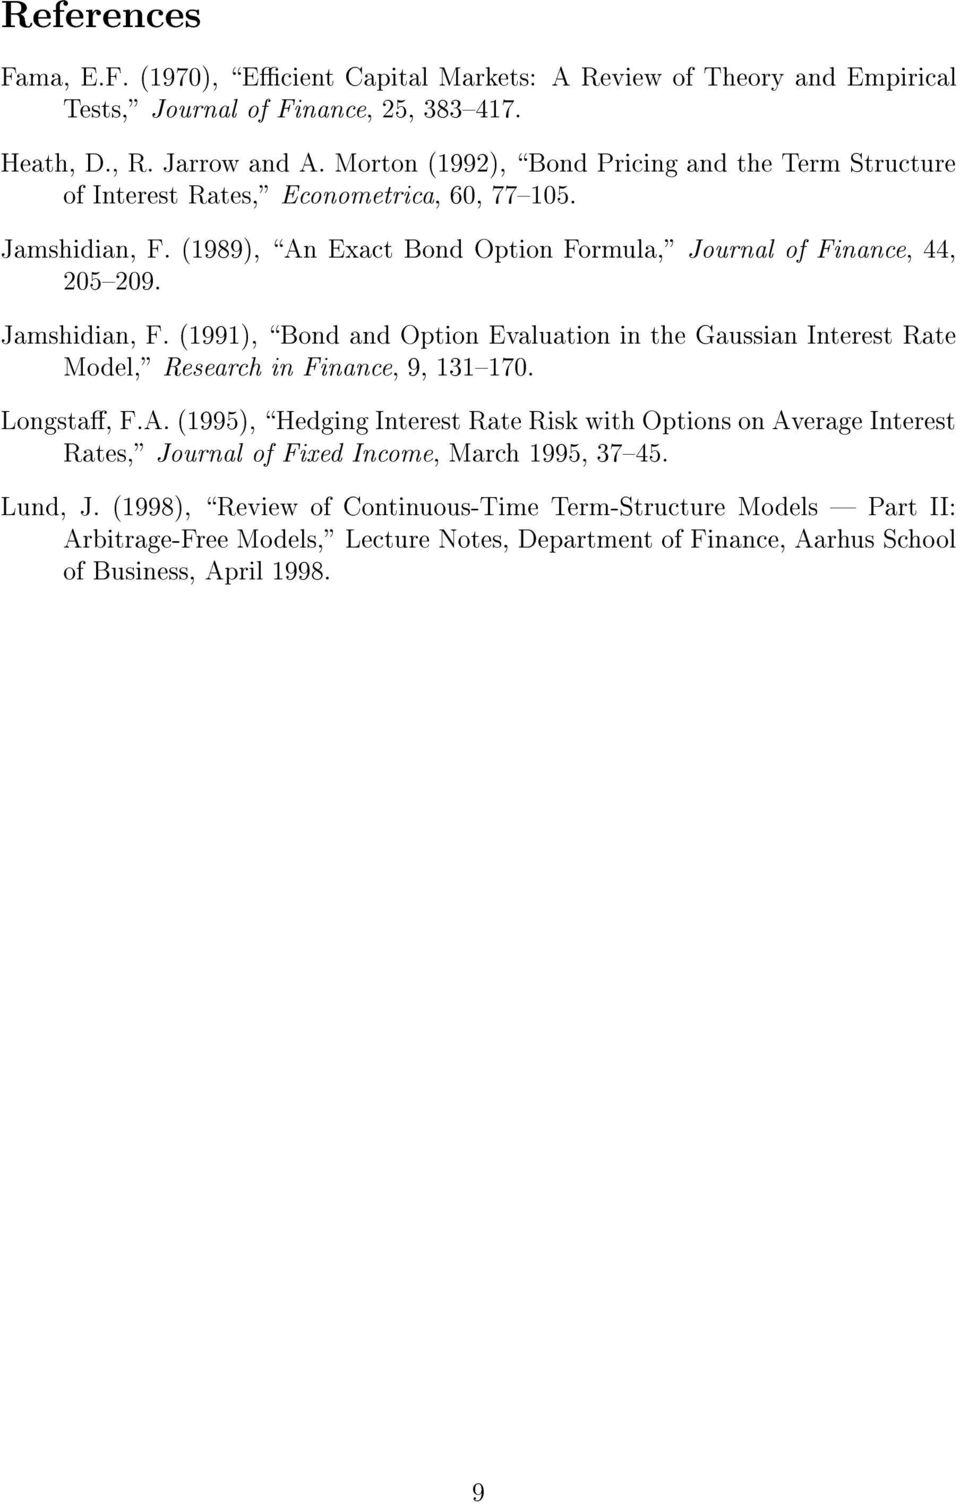 "Jamshidian, F. (99), \Bond and Opion Evaluaion in he Gaussian Ineres Rae Model,"" Research in Finance, 9, 3{7. Longsa, F.A."